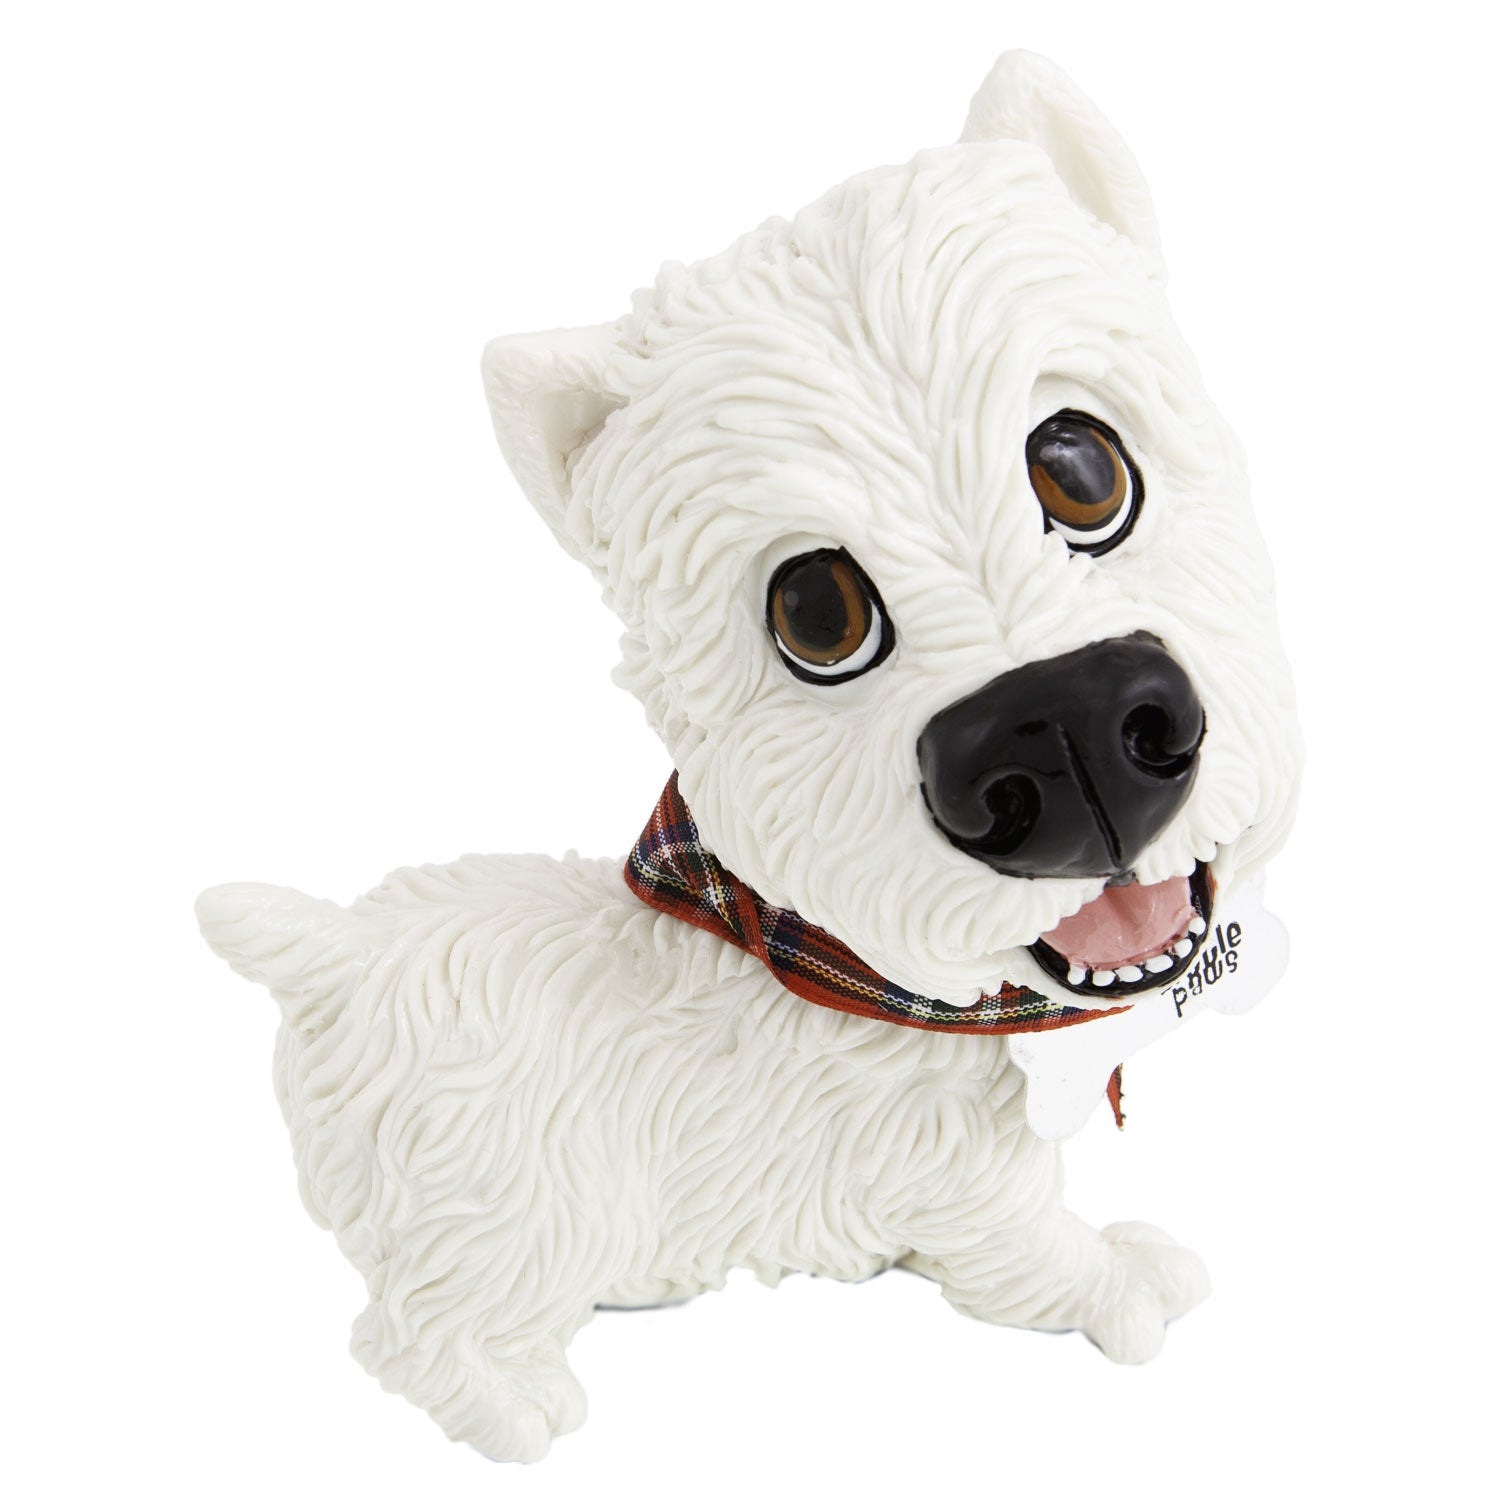 Dog Lover Gifts available at Dog Krazy Gifts - Harry The Westie - part of the Little Paws range available from DogKrazyGifts.co.uk